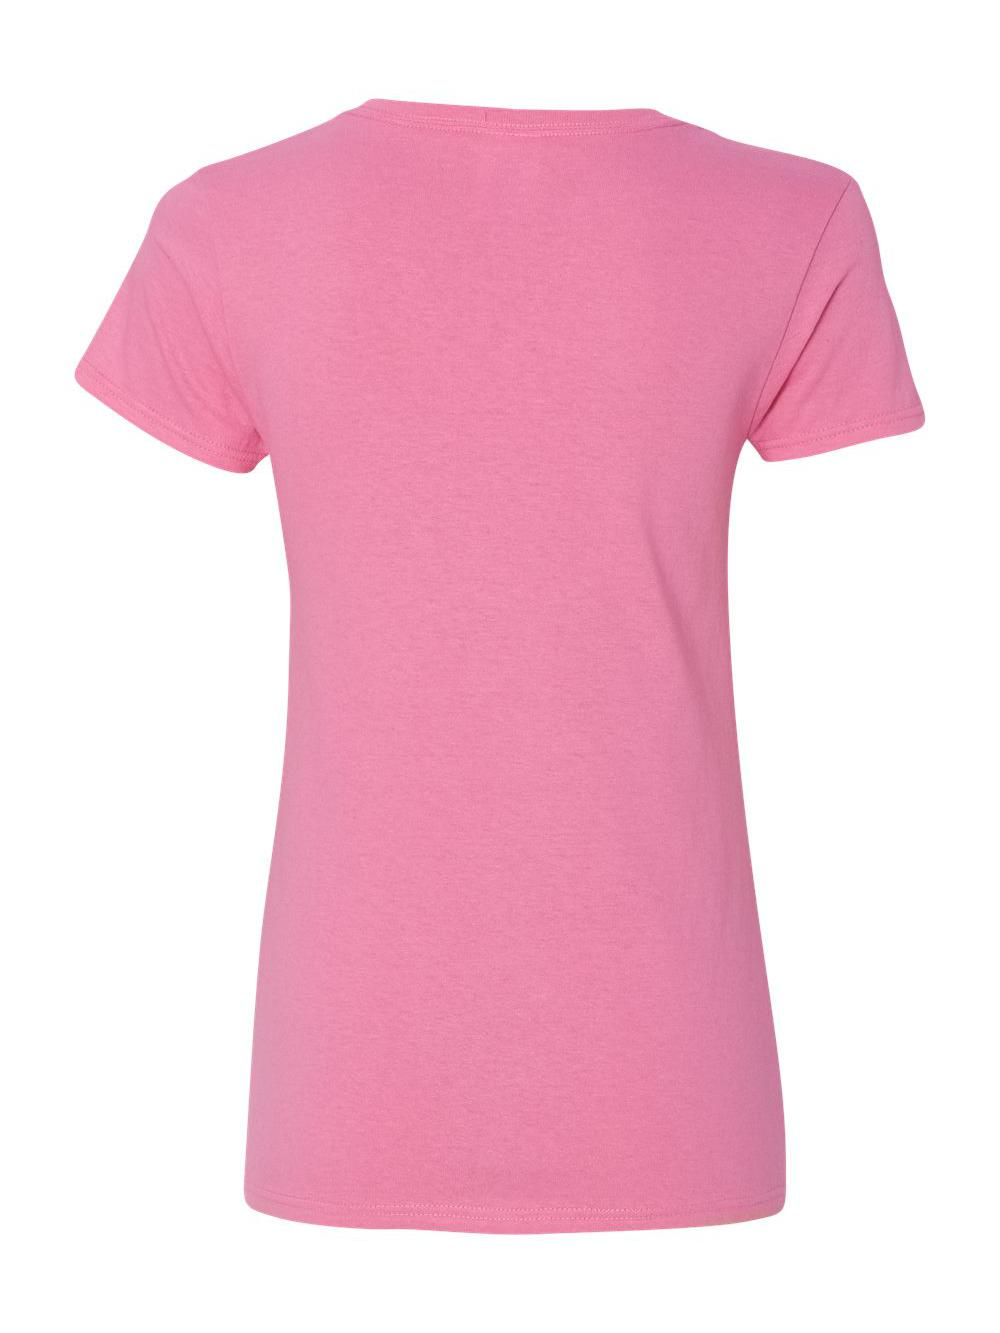 Gildan-Heavy-Cotton-Women-039-s-V-Neck-T-Shirt-5V00L thumbnail 4